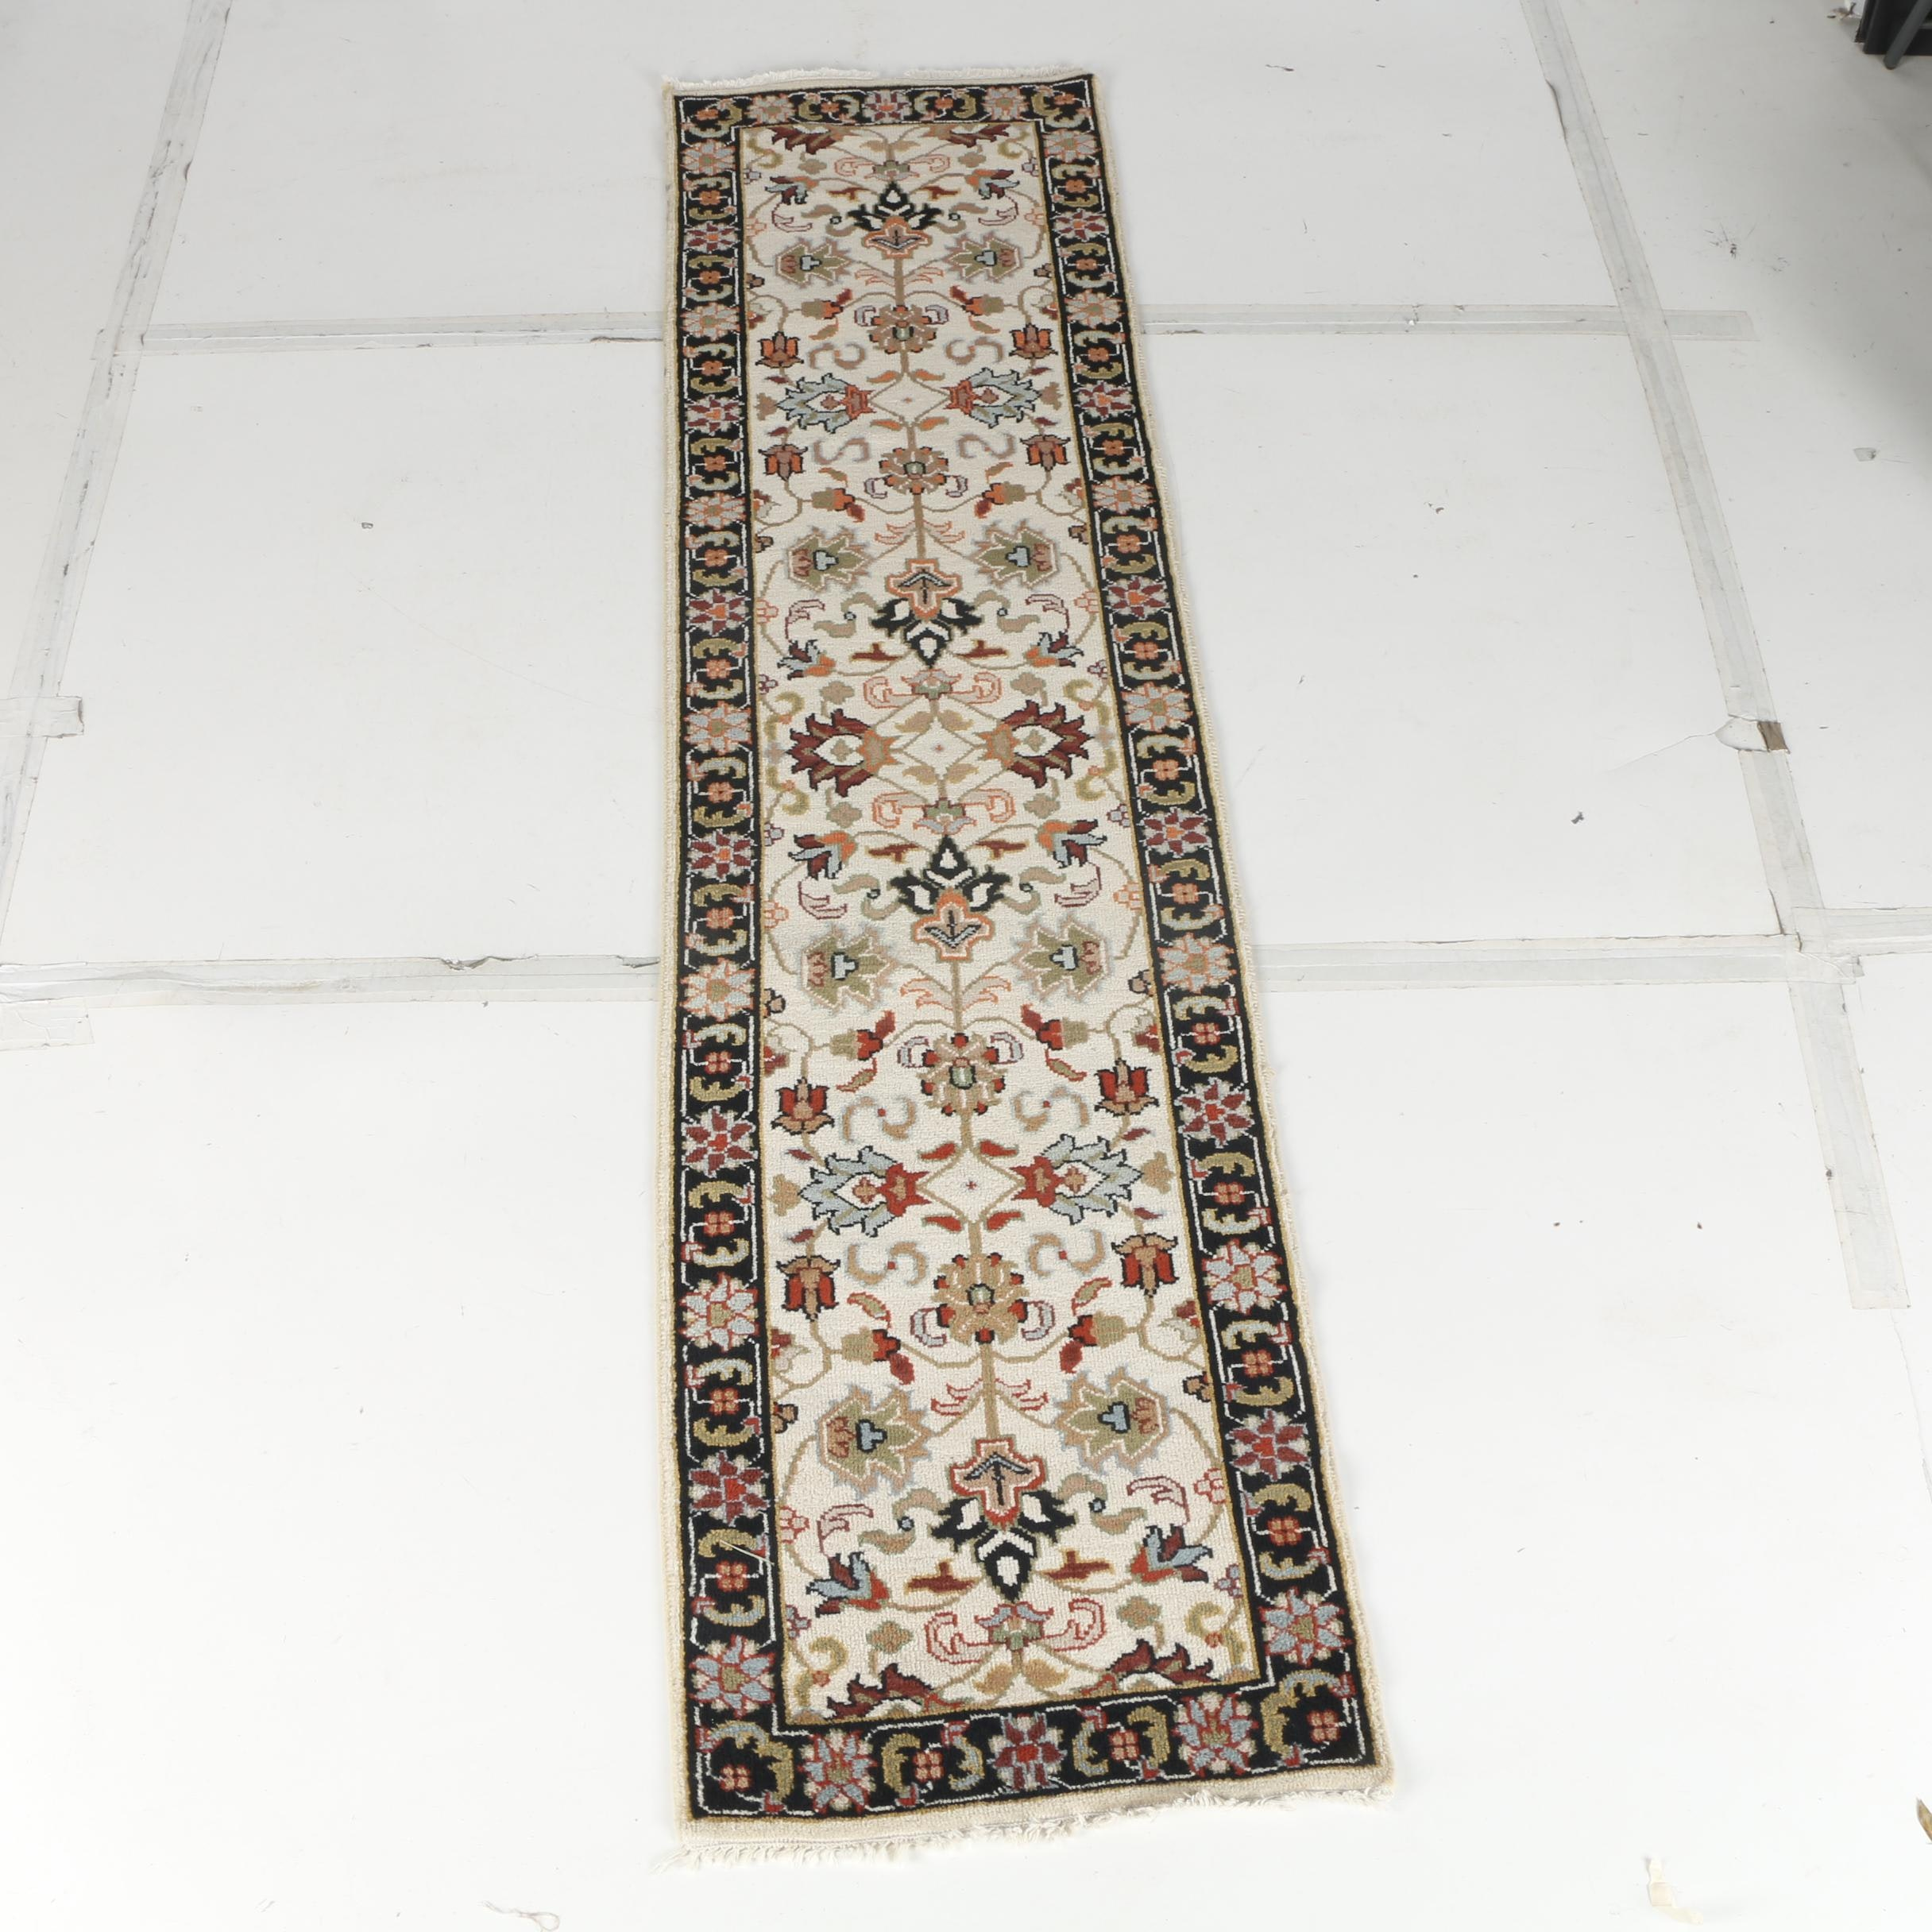 Hand-Knotted Northern Indian Carpet Runner